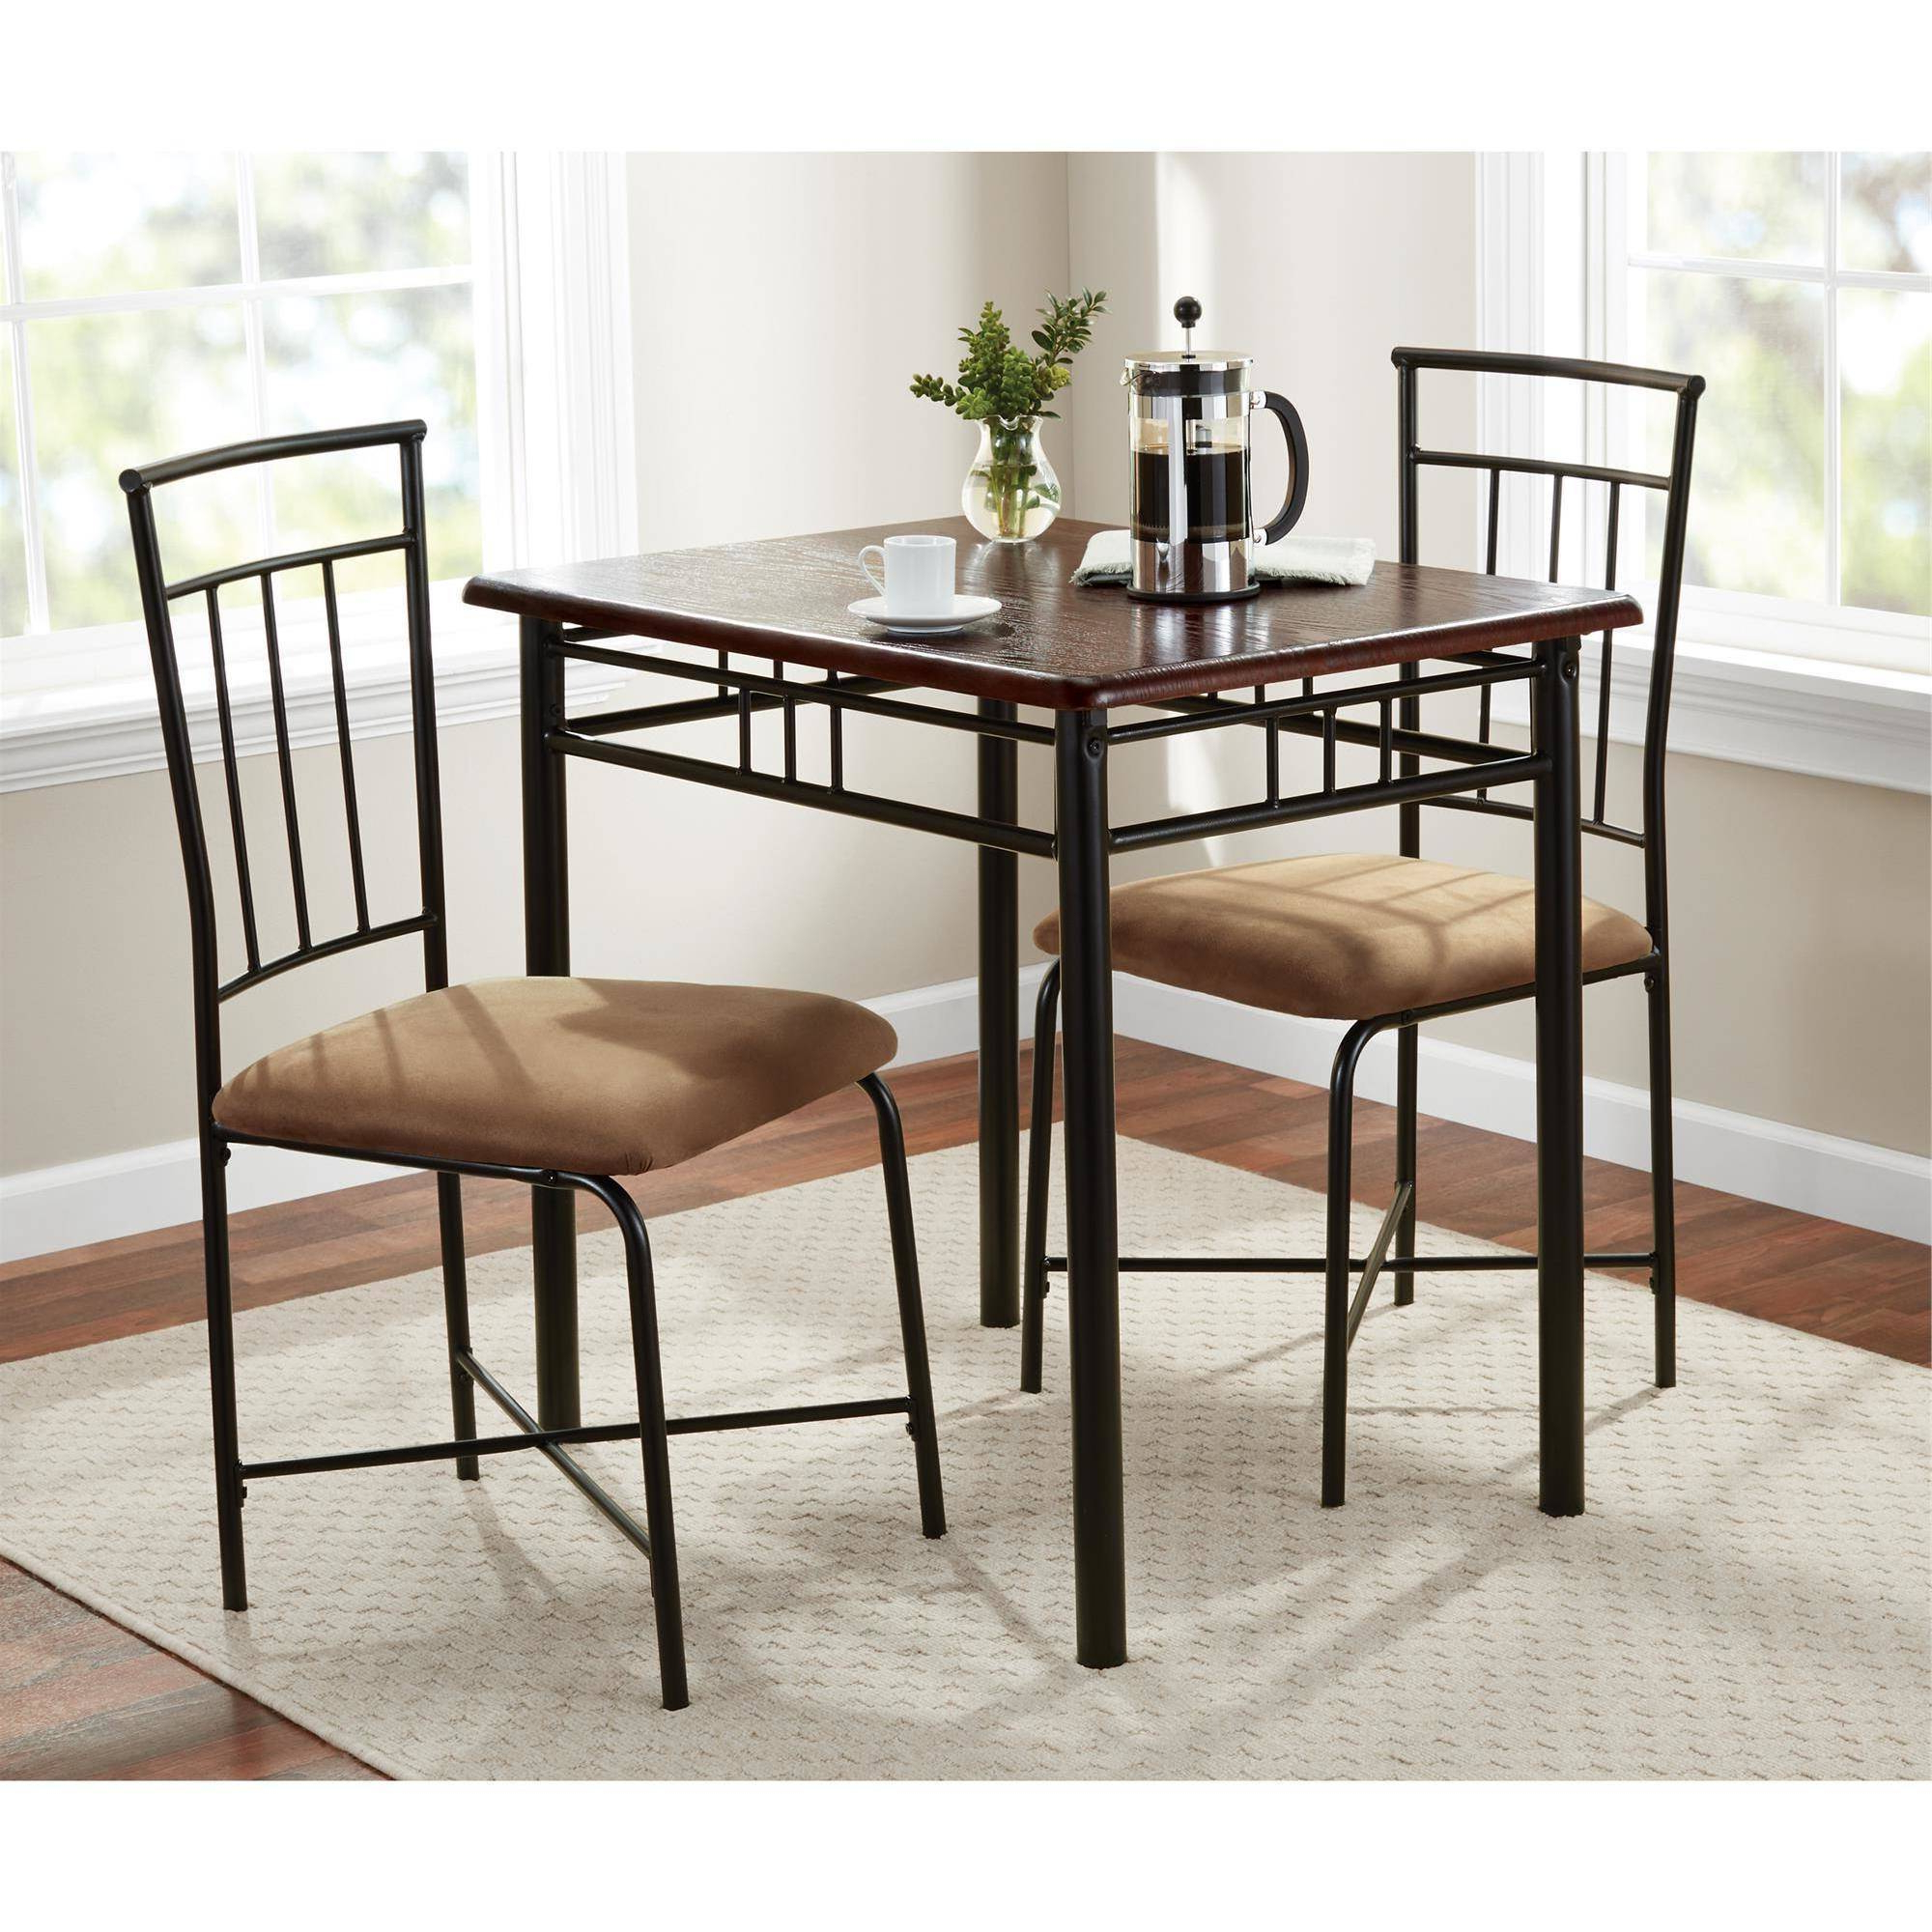 Bearden 3 Piece Dining Sets Regarding Well Liked Mainstays 3 Piece Dining Set, Wood And Metal (Gallery 15 of 20)